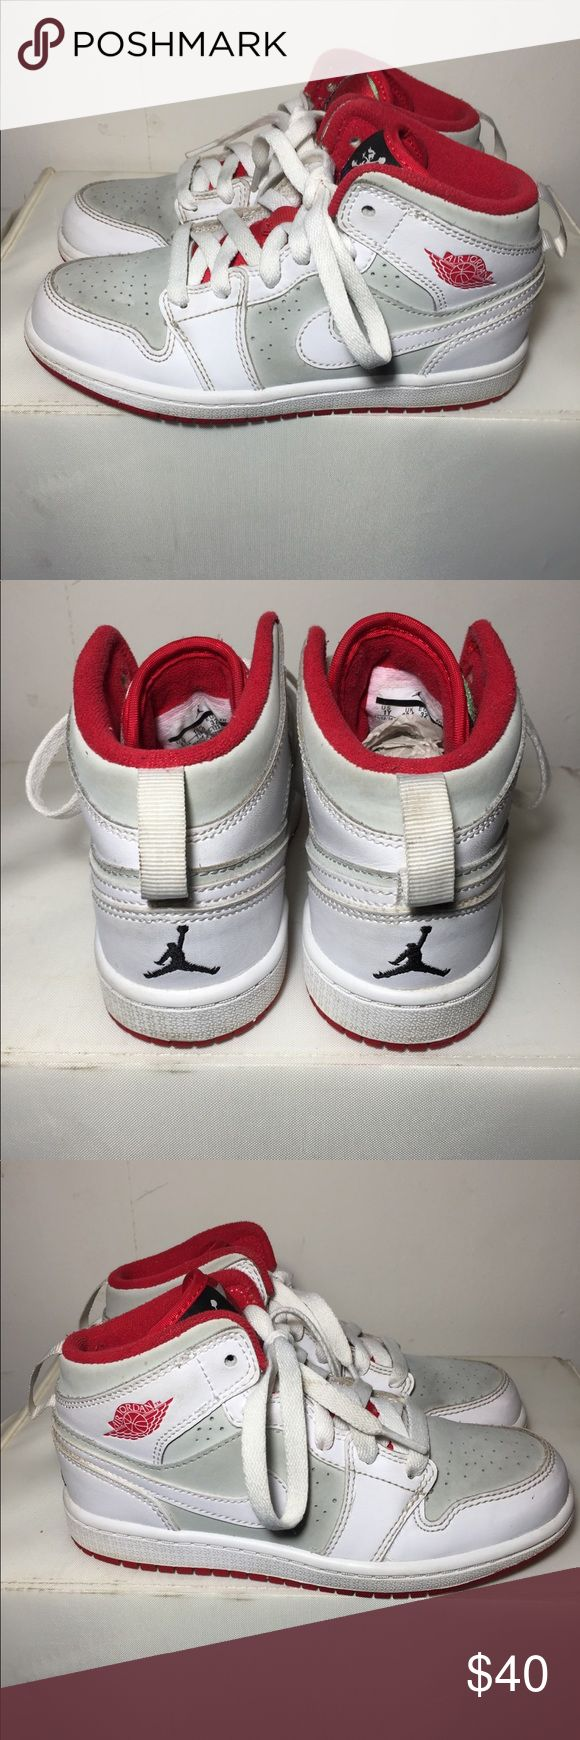 Air Jordan 1 Mid WB Hare - size:1y -color-way:White/Light Silver/Black/True Red -stylecode:719555- 123 -Release Date:2014 -conditions:very good, slight signs of wear -No box⬅️ -100% Authentic 👈🏽👈🏽👈🏽 -🚫no trades🚫 -sold as is!!!👈🏽 👉🏽👉🏽please look at all pictures and ask questions before buying shoes ⬅️👈🏽 -irrelevant comments will get you blocked Jordan Shoes Sneakers